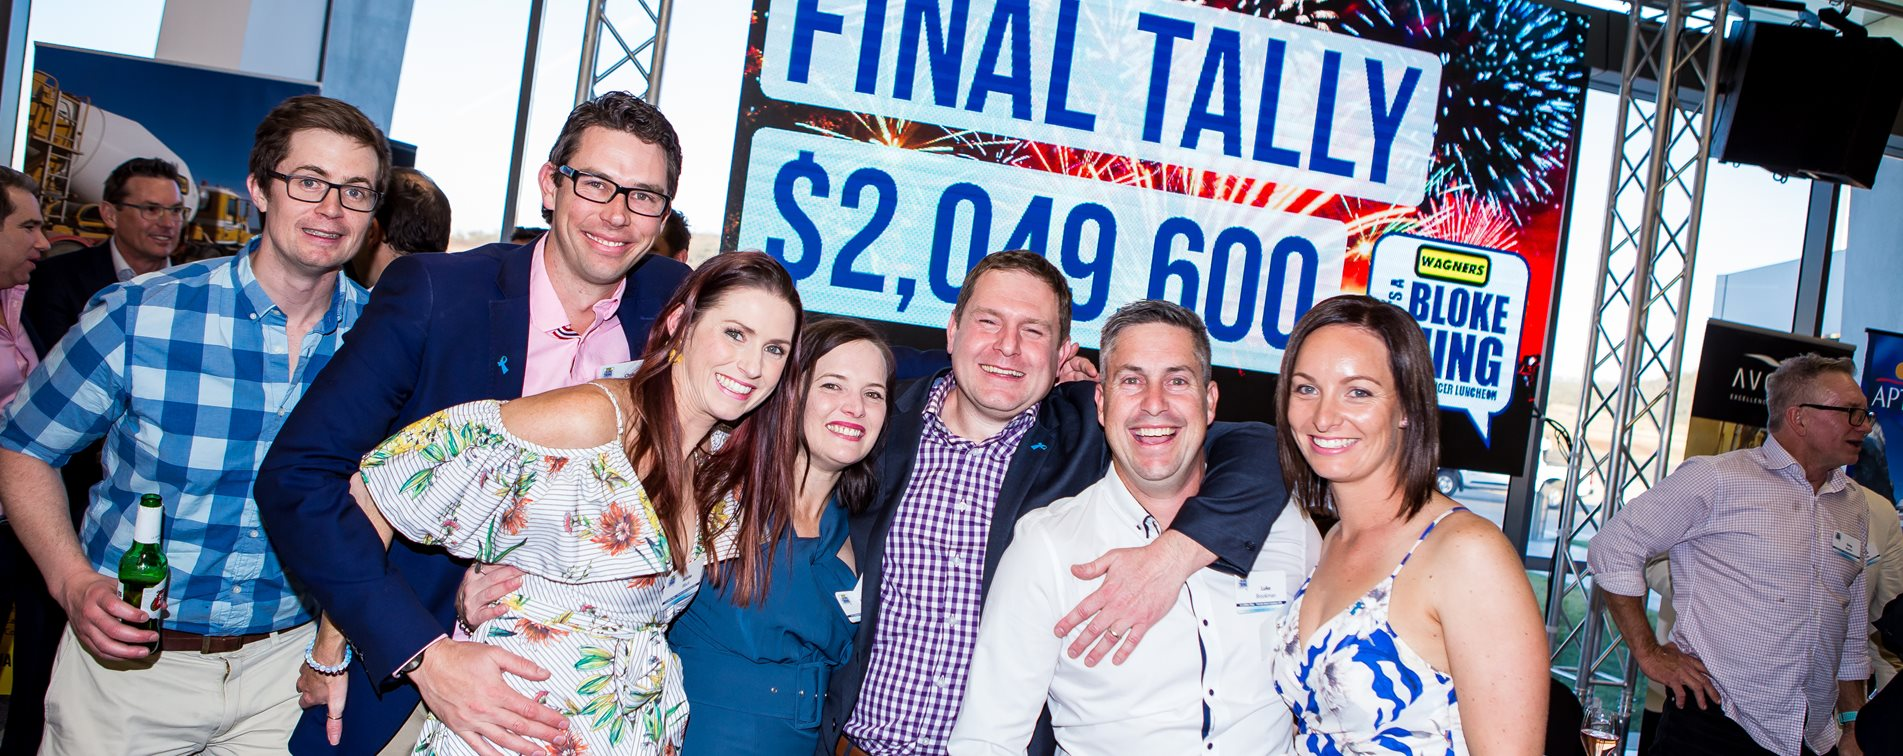 Helping 'It's a Bloke Thing' raise record breaking funds for prostate cancer